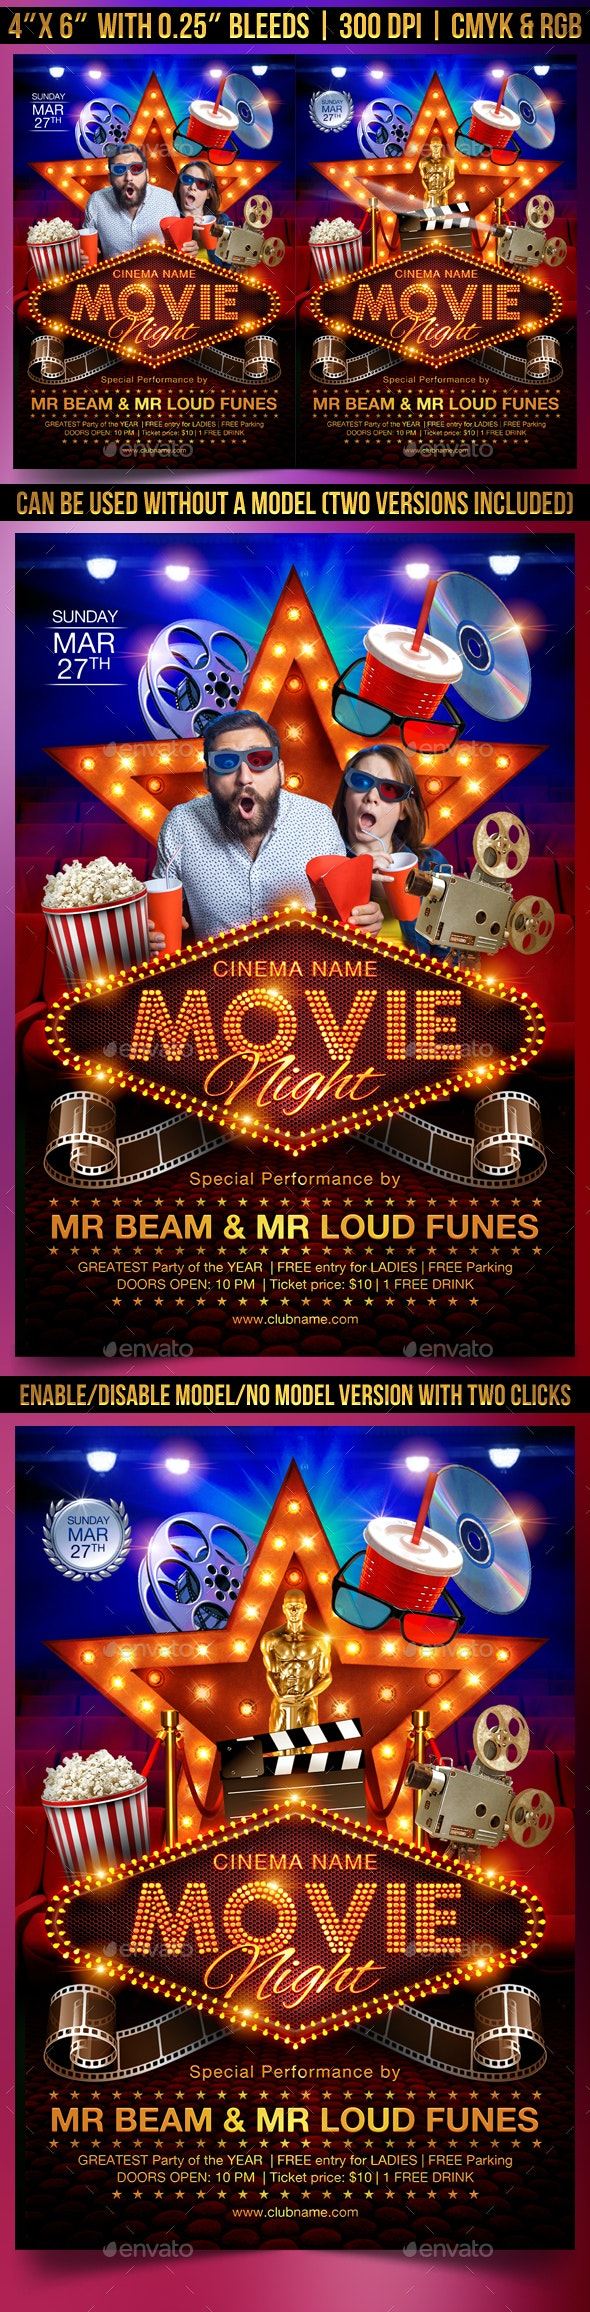 Movie Night Flyer Template - Clubs & Parties Events